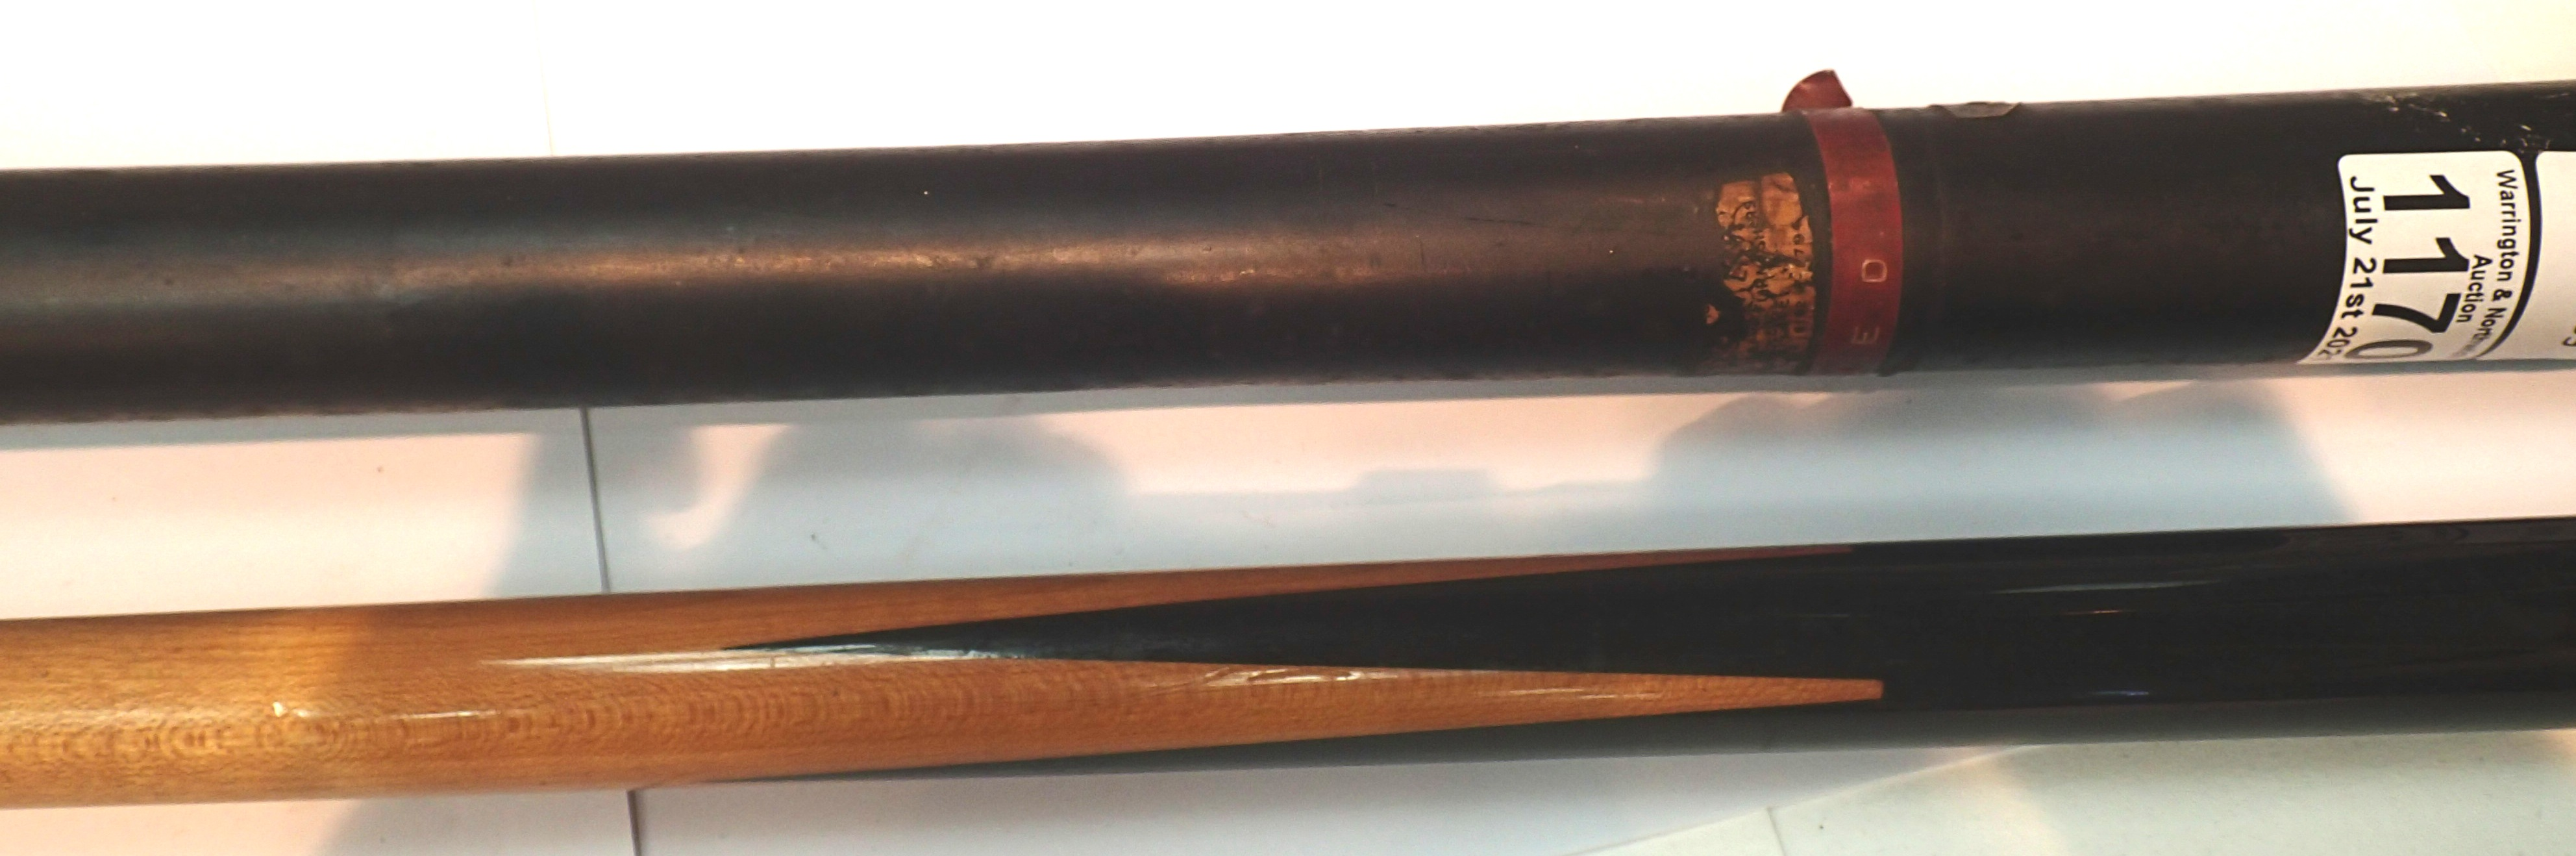 Vintage one piece snooker cue with carry case. Not available for in-house P&P, contact Paul O'Hea at